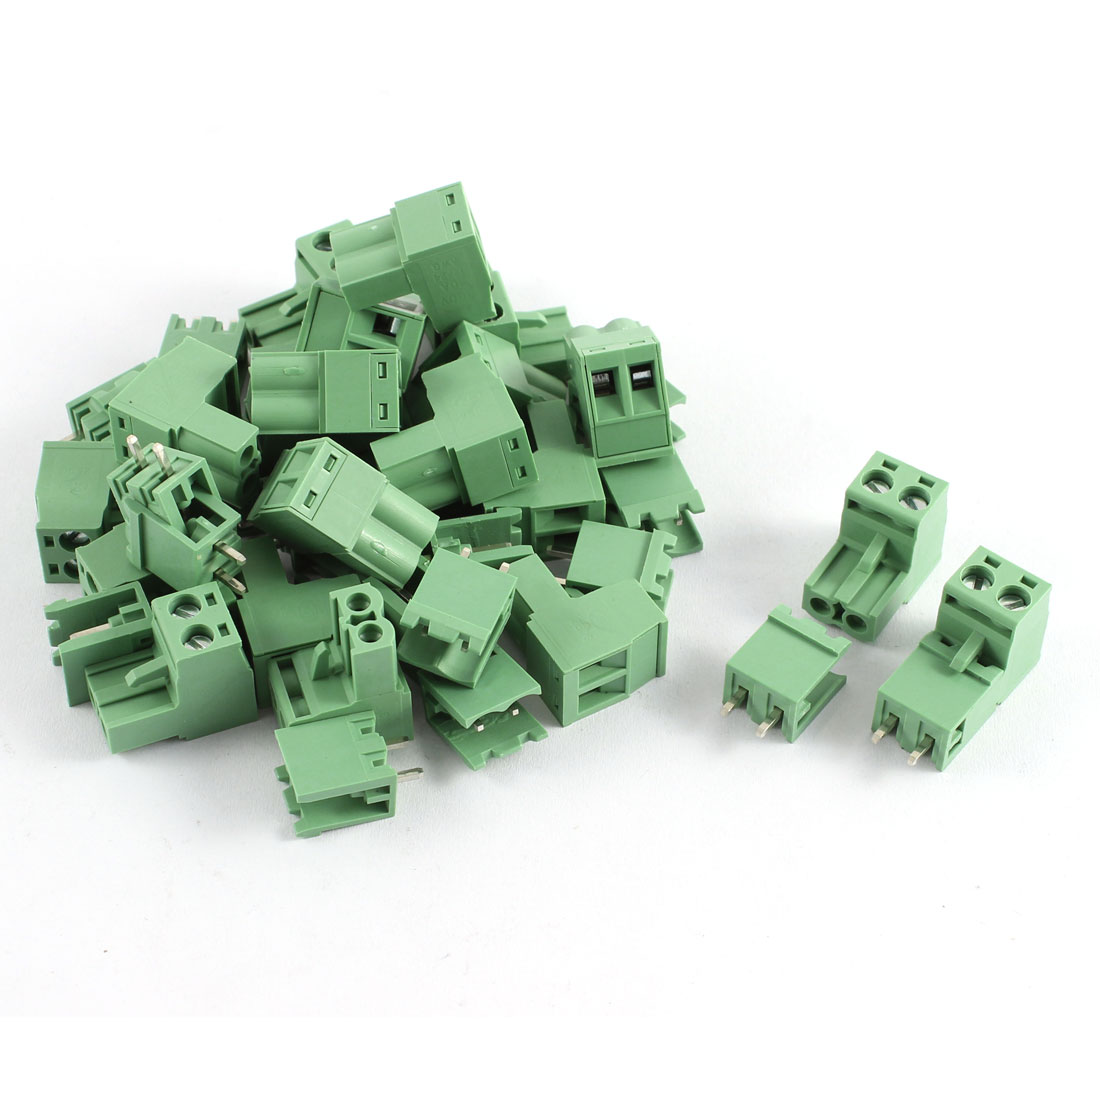 20 Pcs AWG 12-24 AC 300V 10A 2 Positions PCB Screw Terminal Block Connector Army Green